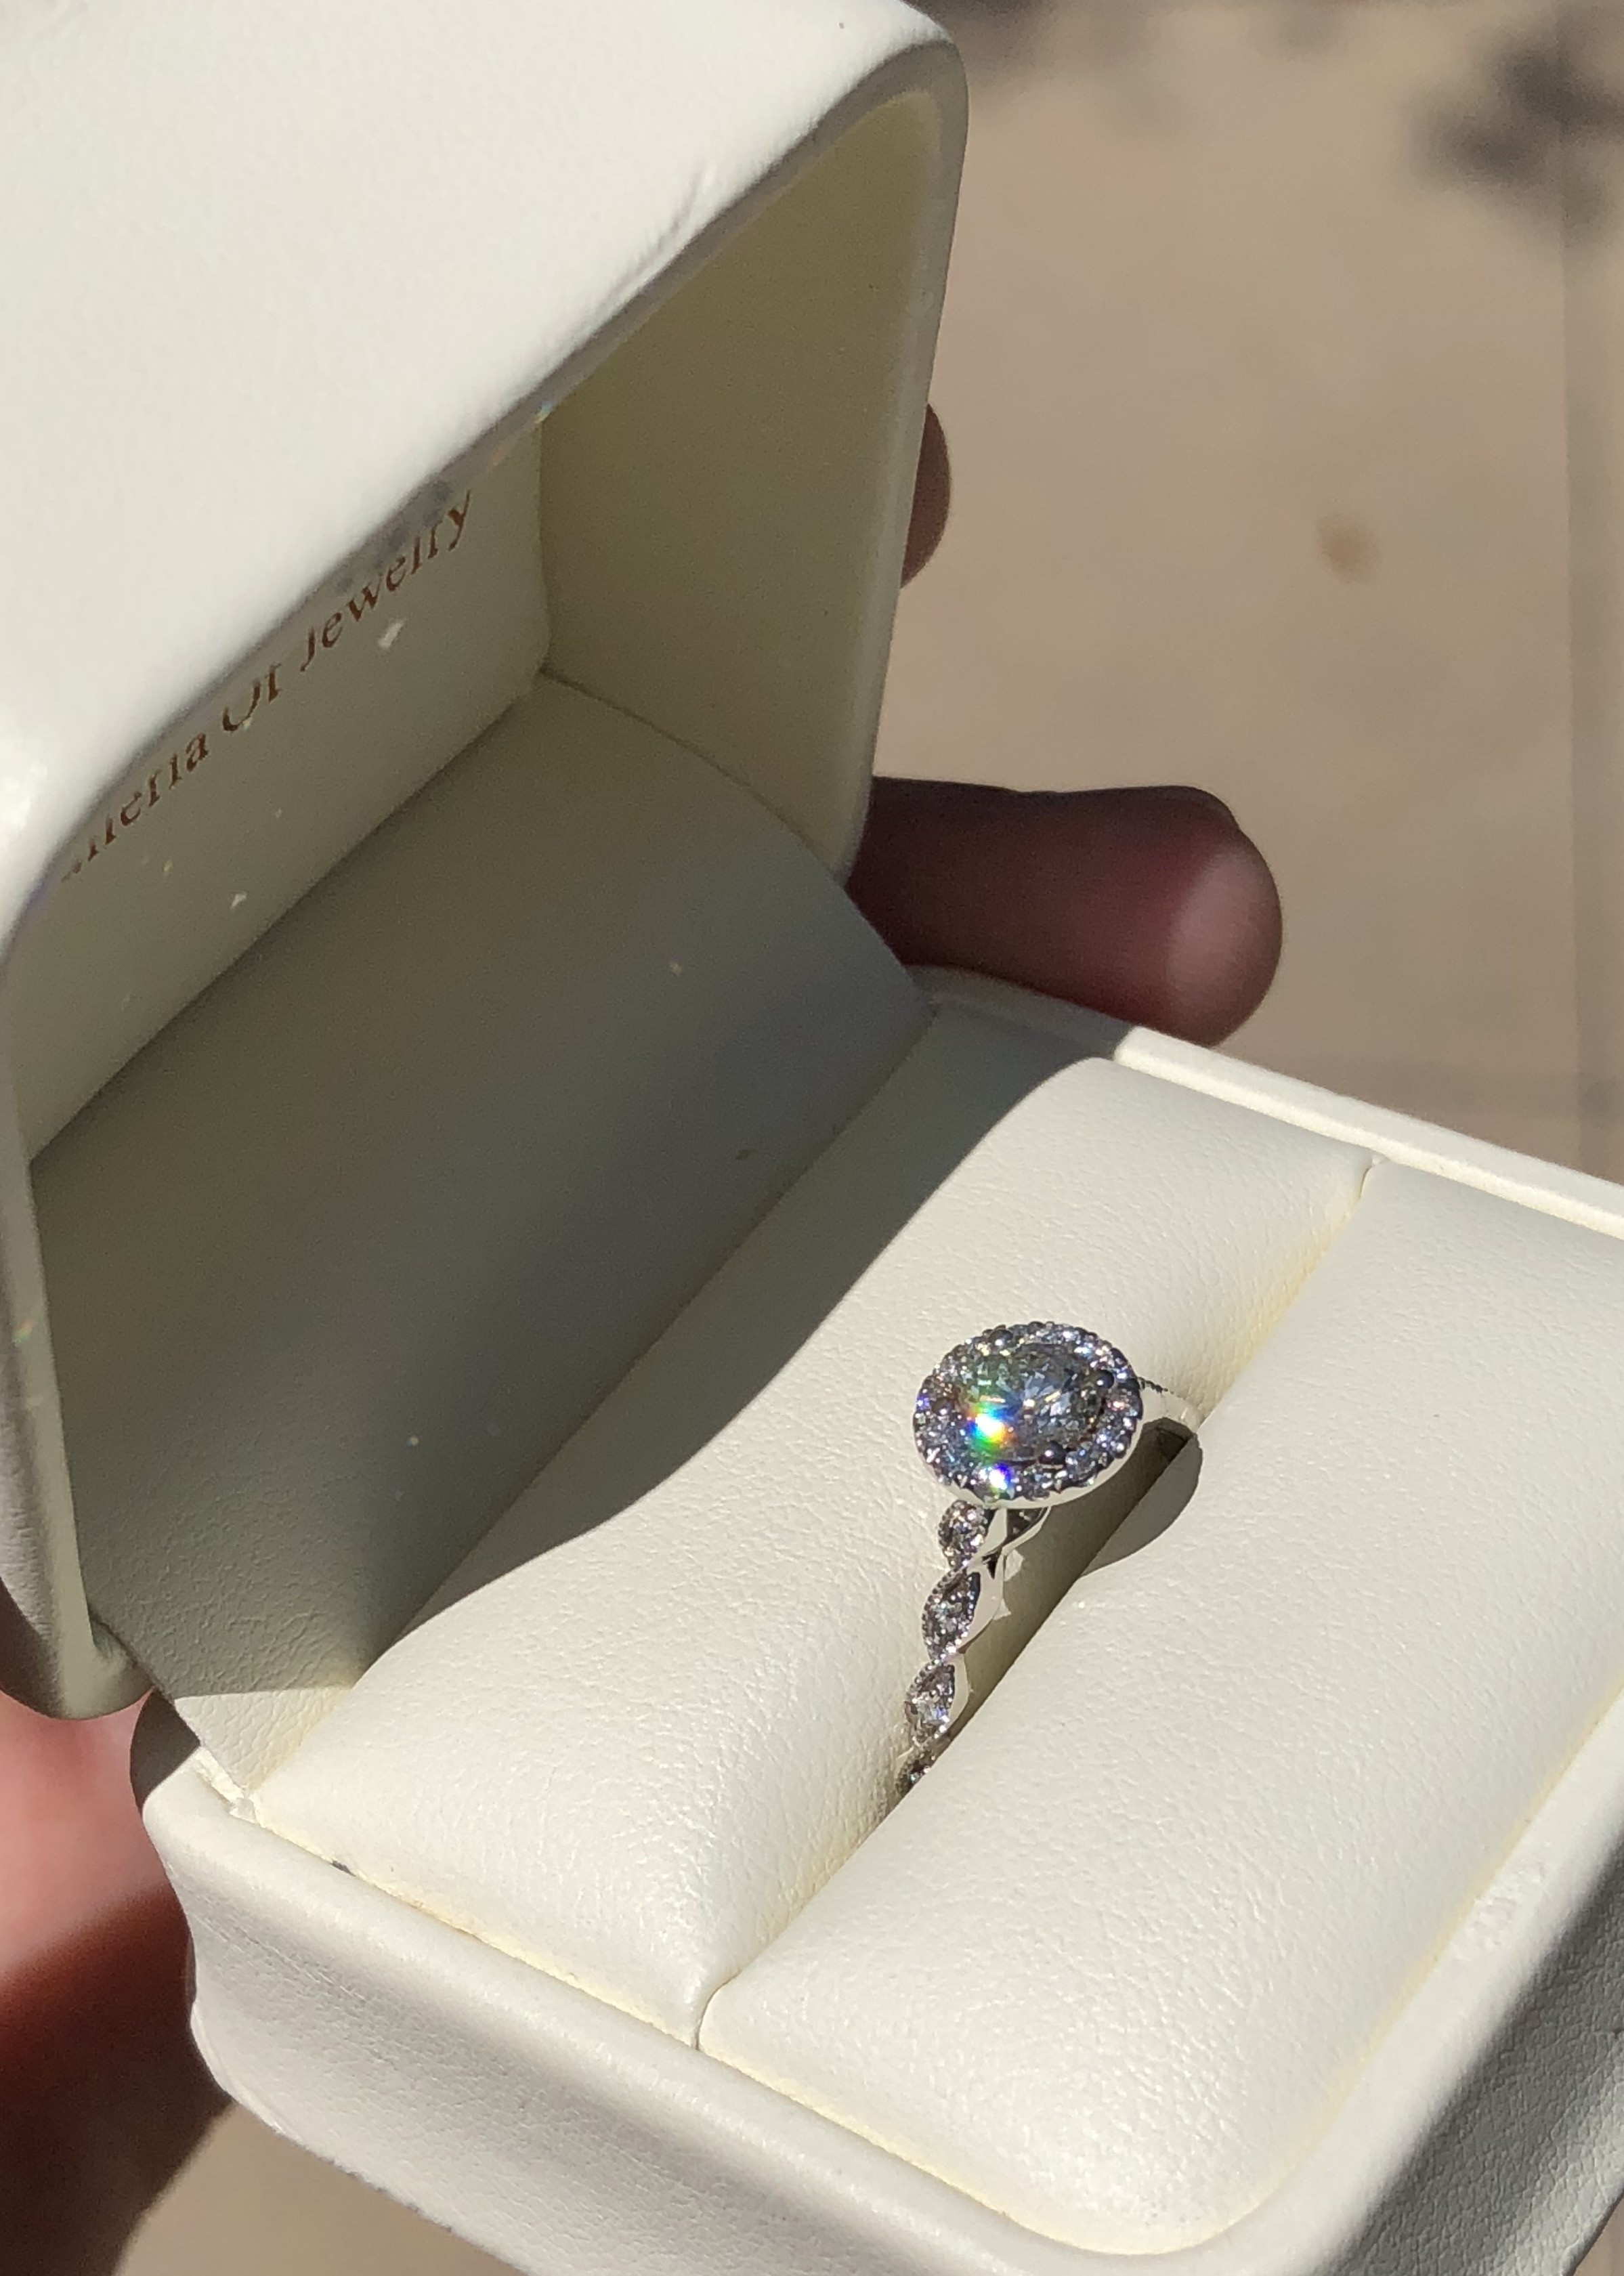 Jared, Custom Made Ring, Never Worn, Ring Size 6.5, Excellent Cut